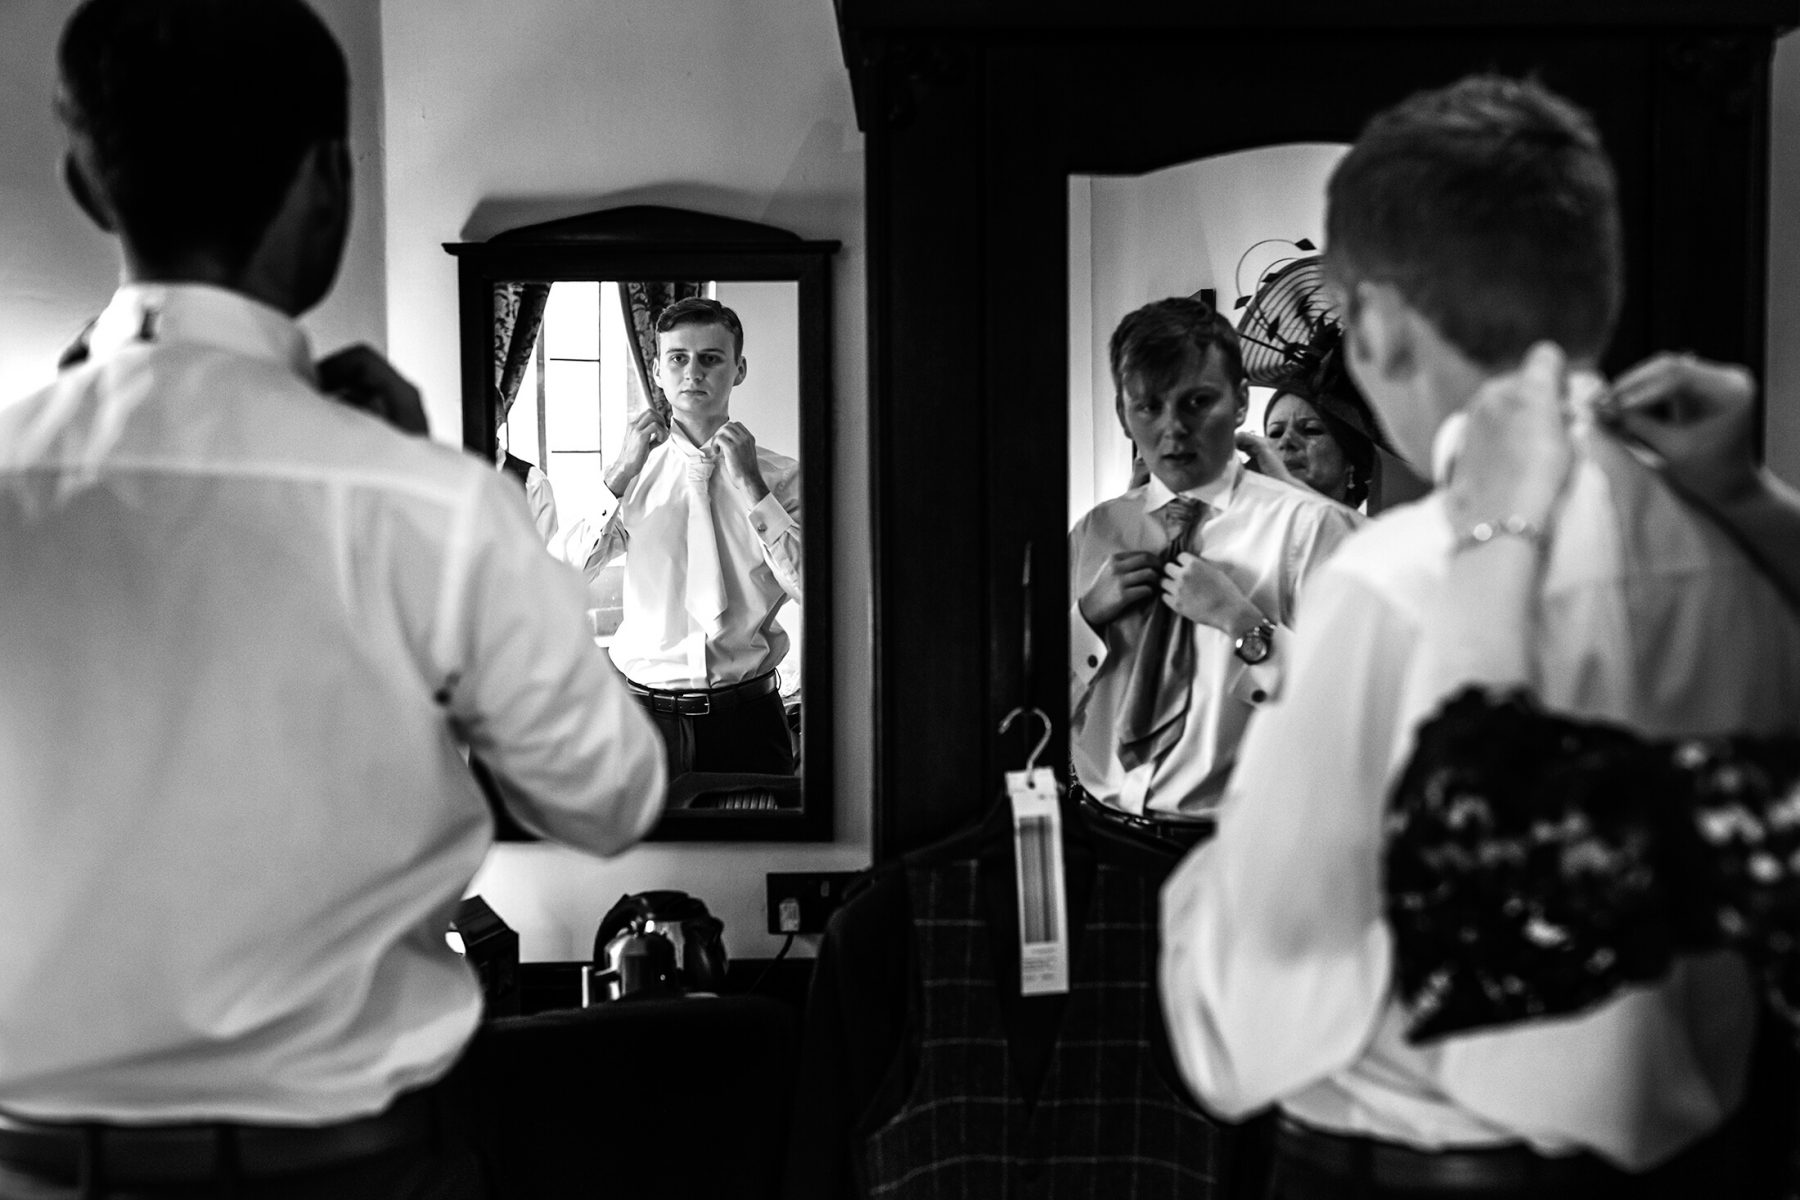 A groom gets ready prior to he wedding at Peckforton Castle